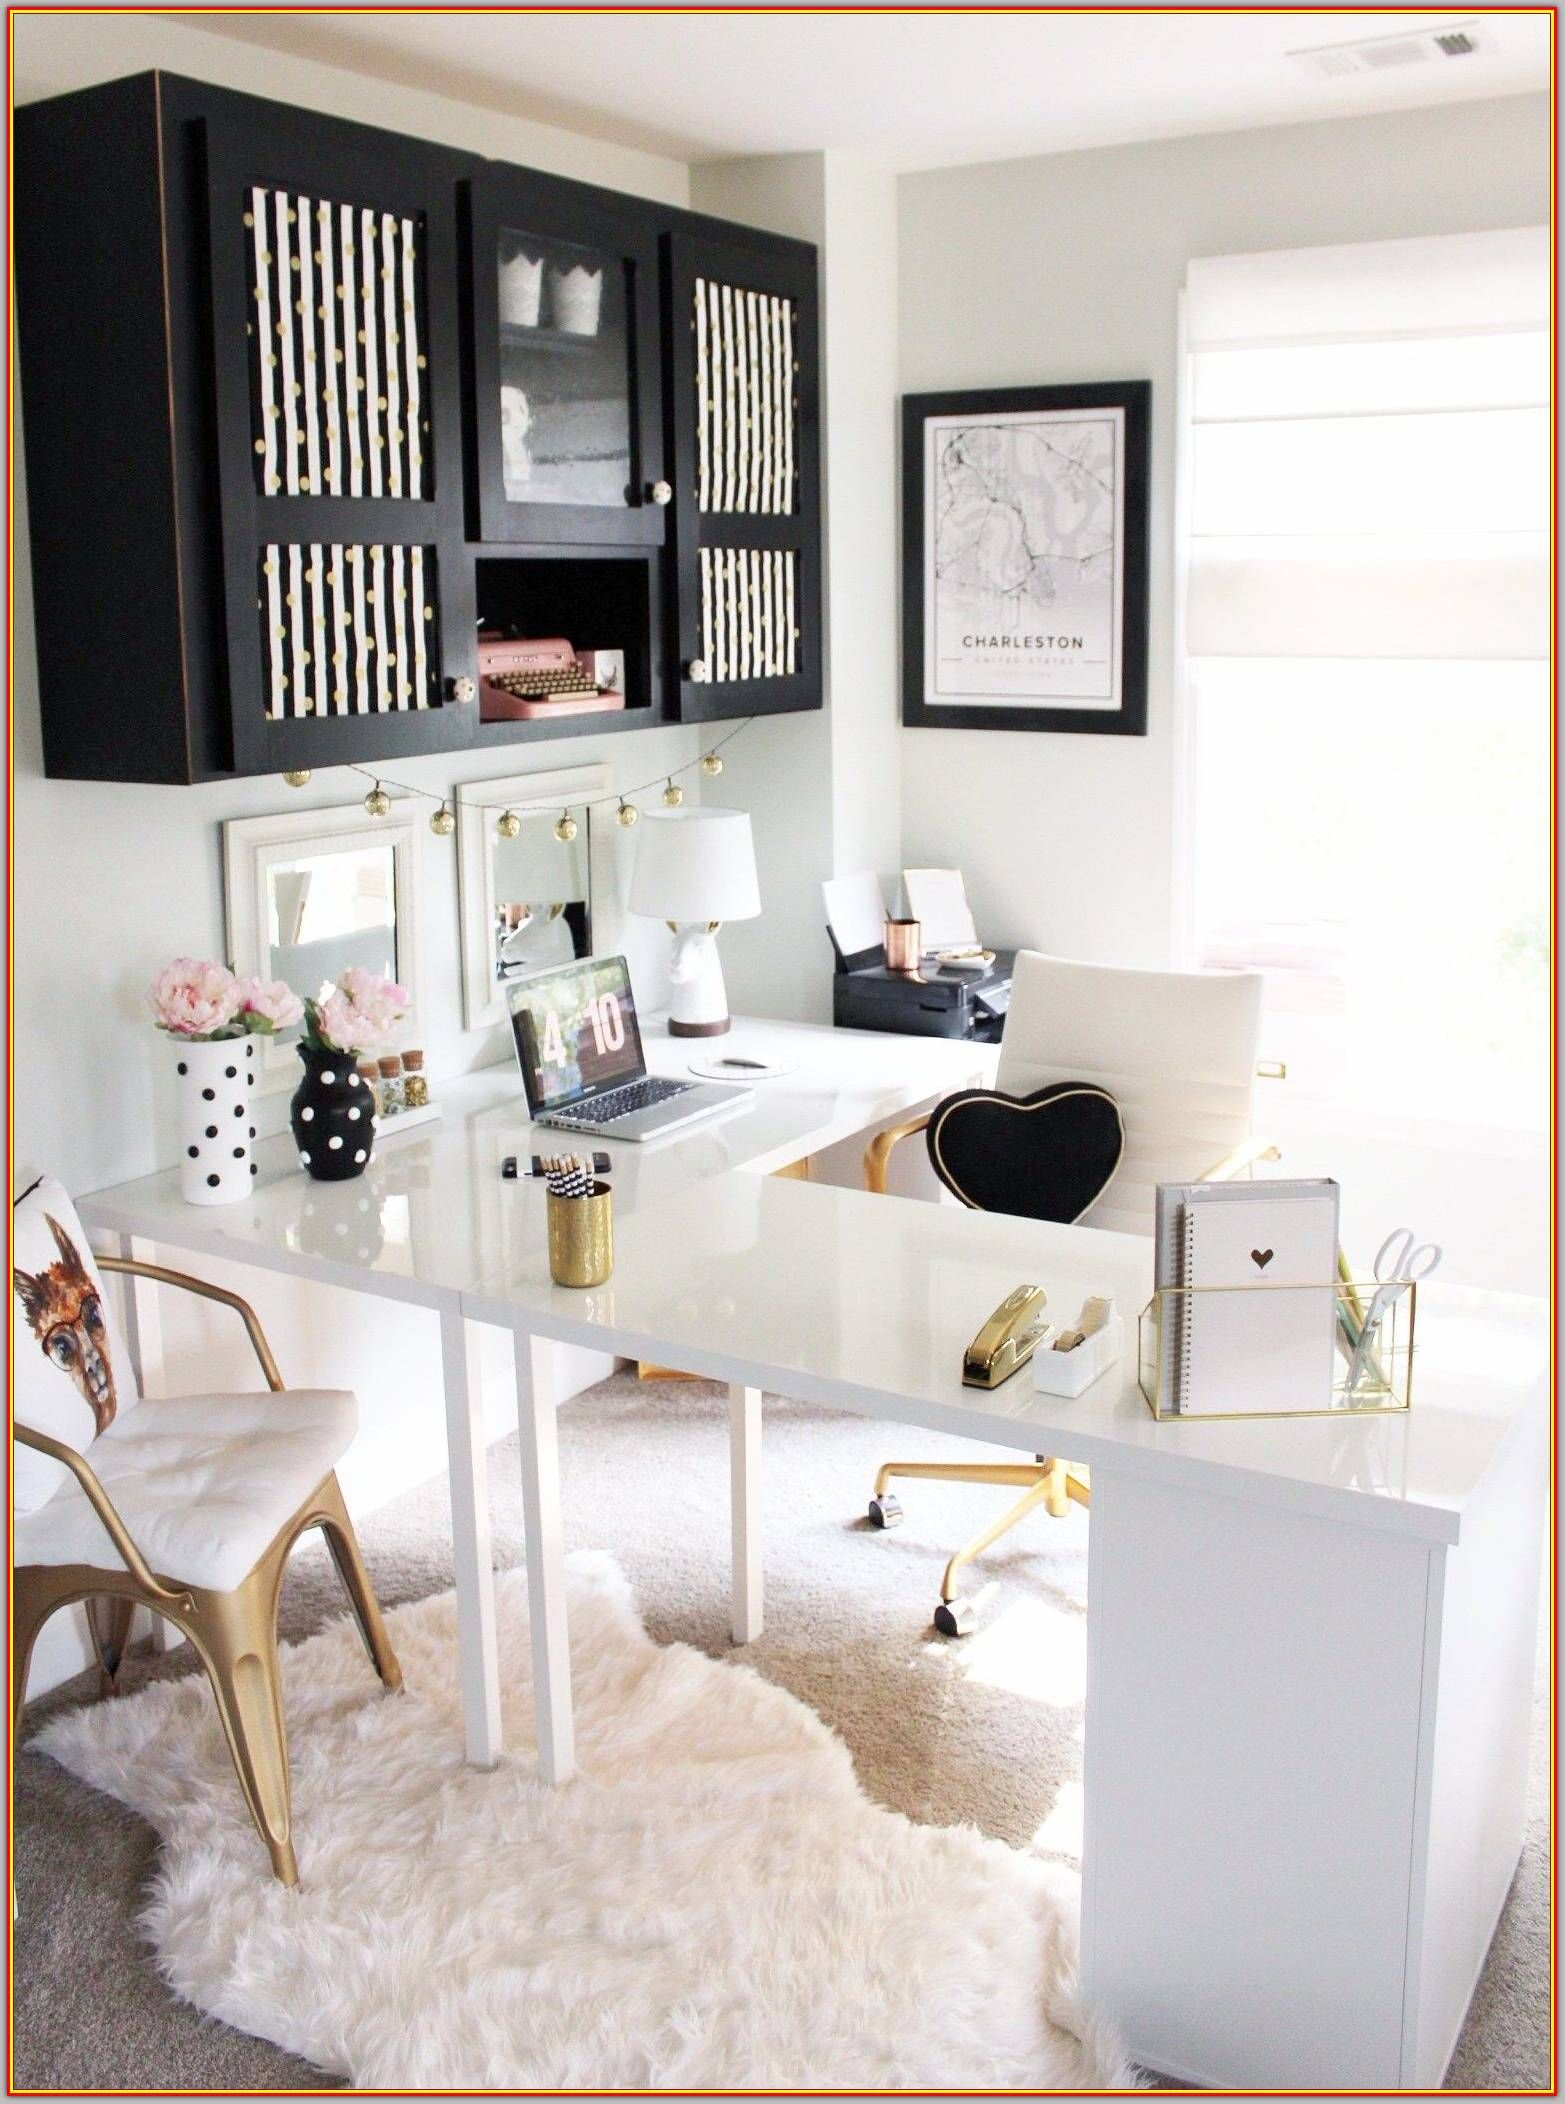 Furnish Your Home Office Decor With These Tips And Tricks Modern Interior Design In 2020 Cozy Home Office Home Office Design Home Office Decor